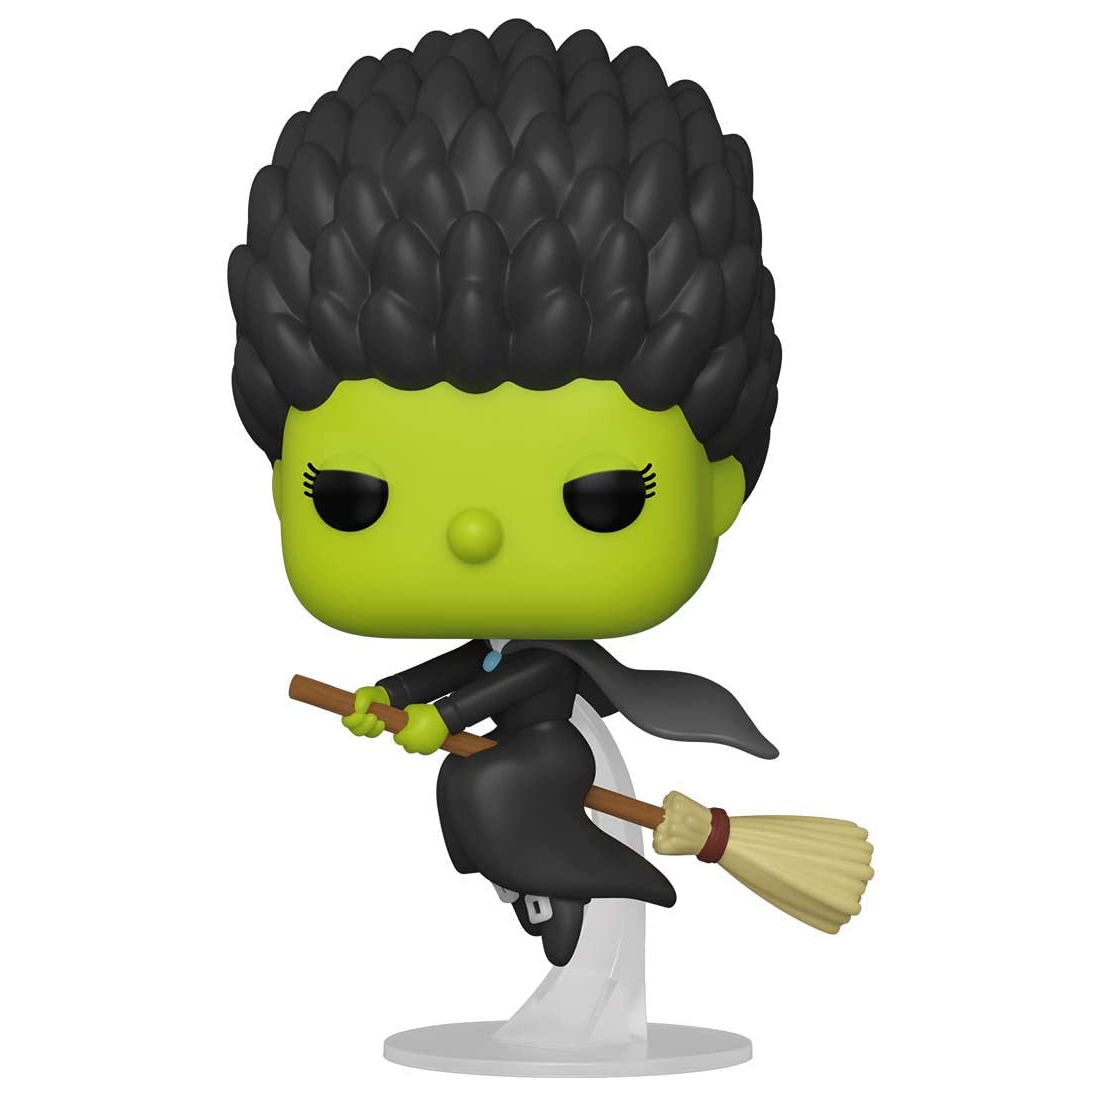 Funko Pop! Television: The Simpsons - Theehouse of Horror 1028 - Witch Marge